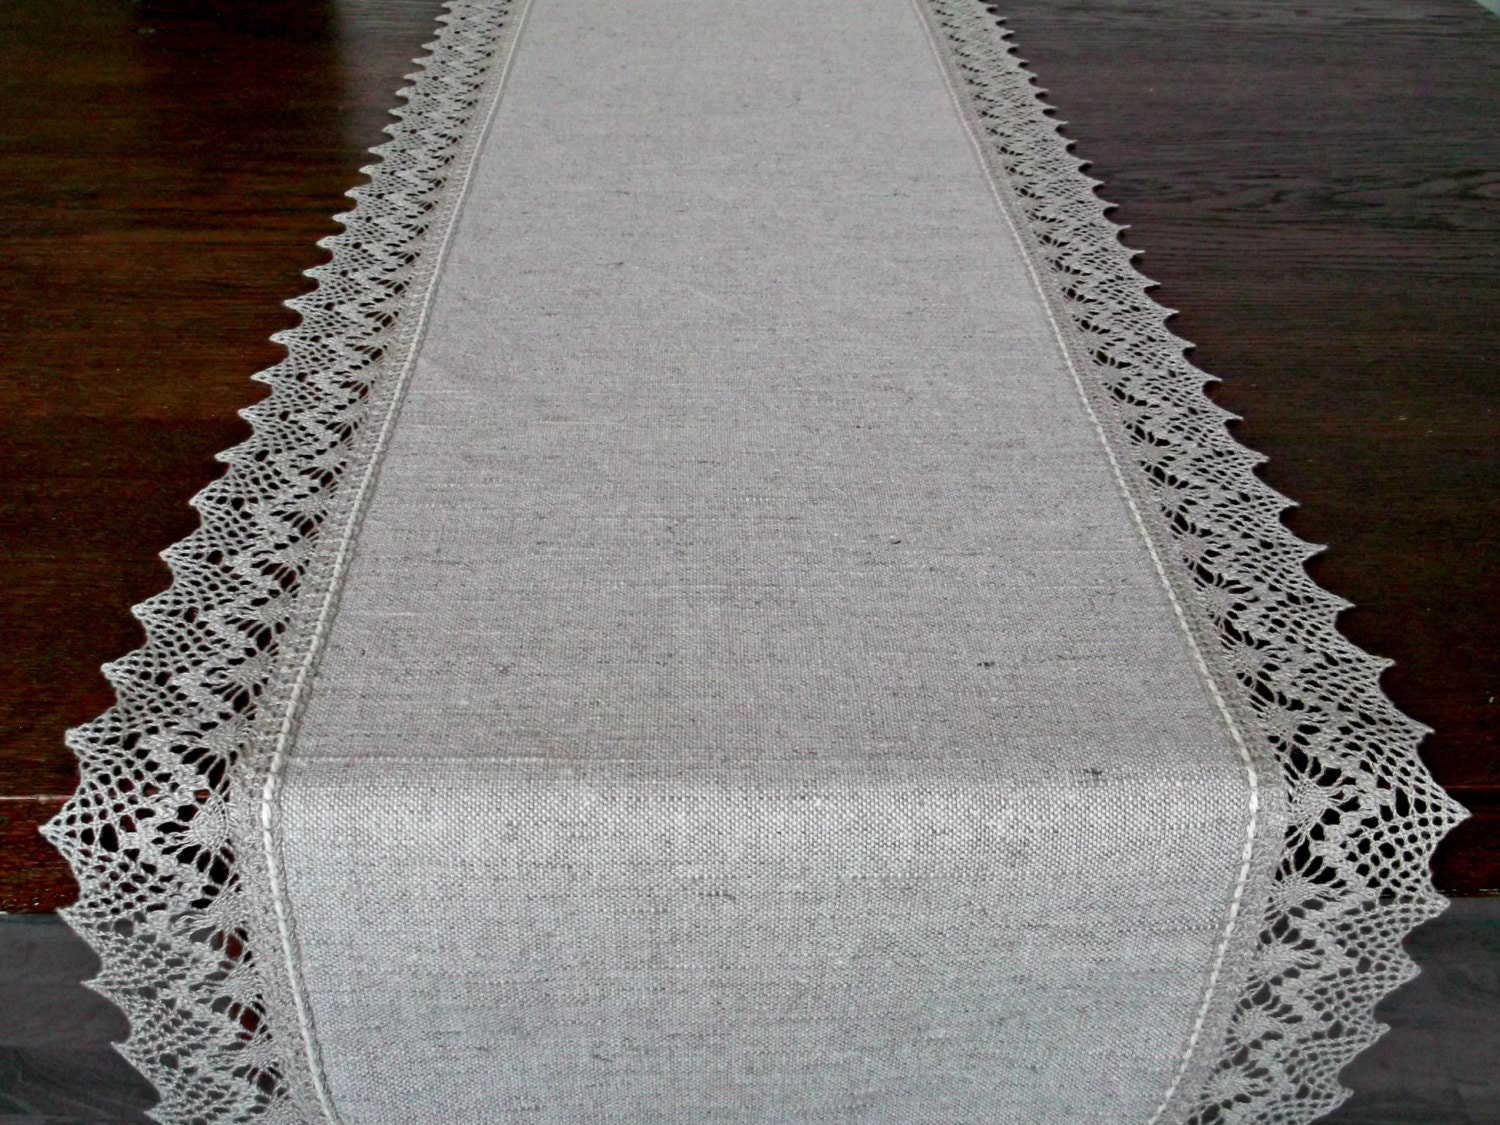 120 Extra long table runner Linen lace table scarf Light  : ilfullxfull952712774t3no from www.etsystudio.com size 1500 x 1125 jpeg 487kB